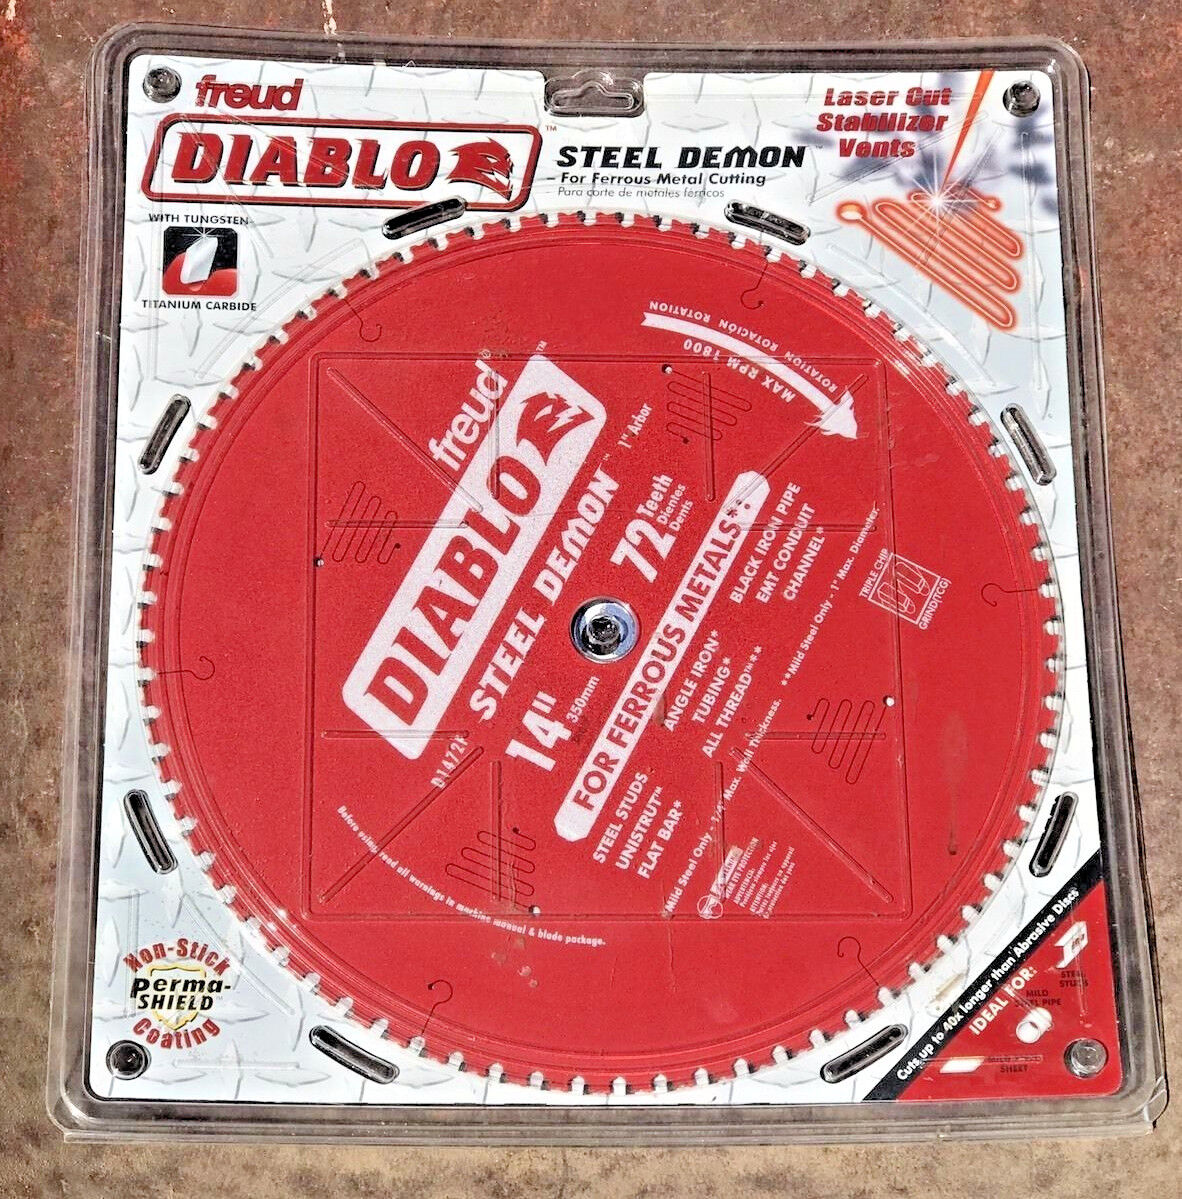 Freud, D1472F, Diablo 14  72T Steel Demon Ferrous Metals Circular Saw Blade, NEW